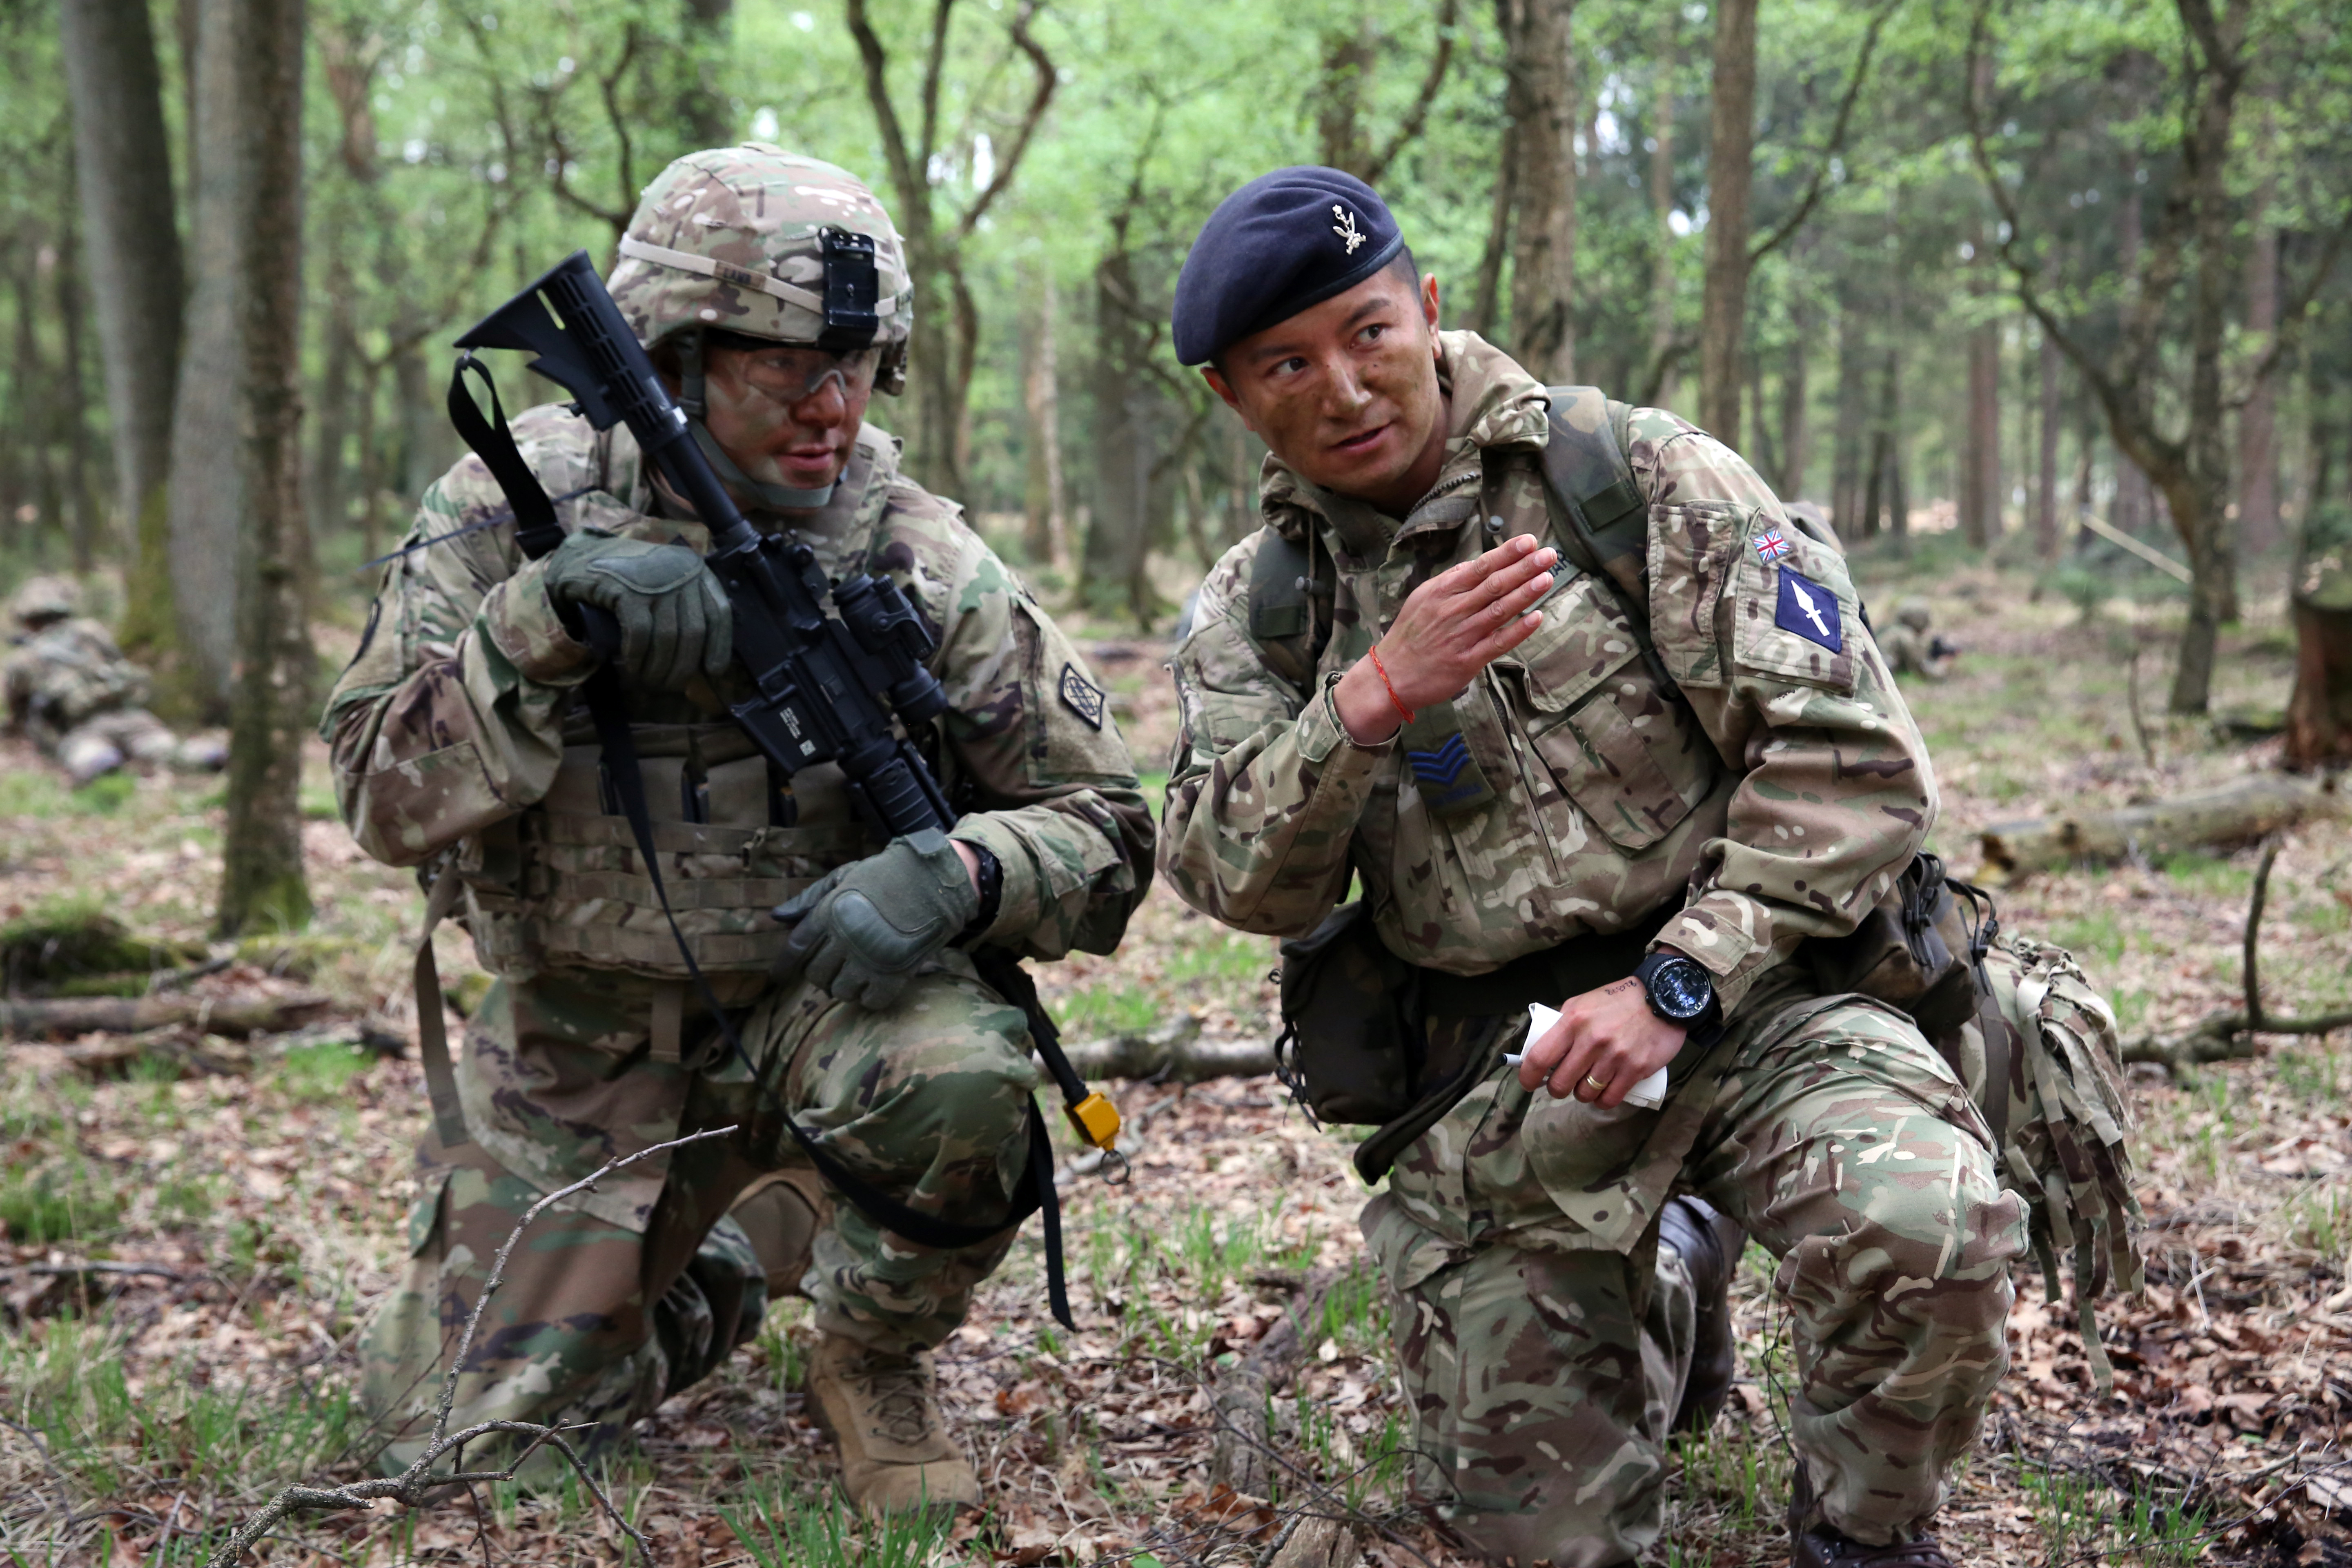 British Army Sgt. Thapa Kumar, assigned to the 250th Signal Squadron, Queen's Gurkha Signals, instructs U.S. Army Staff Sgt. Jeffery Lamb, assigned to Bravo Company, 44th Expeditionary Signal Battalion, 2nd Theater Signal Brigade, during a joint tactical patrol during exercise Stoney Run in the Sennelager Training Area, Germany, April 24, 2018. Stoney Run is an annual U.S.-U.K. signal exercise designed to test and validate communications and network capabilities, and enhance interoperability and partner capacity between the two NATO allies. (U.S. Army photo by William B. King)